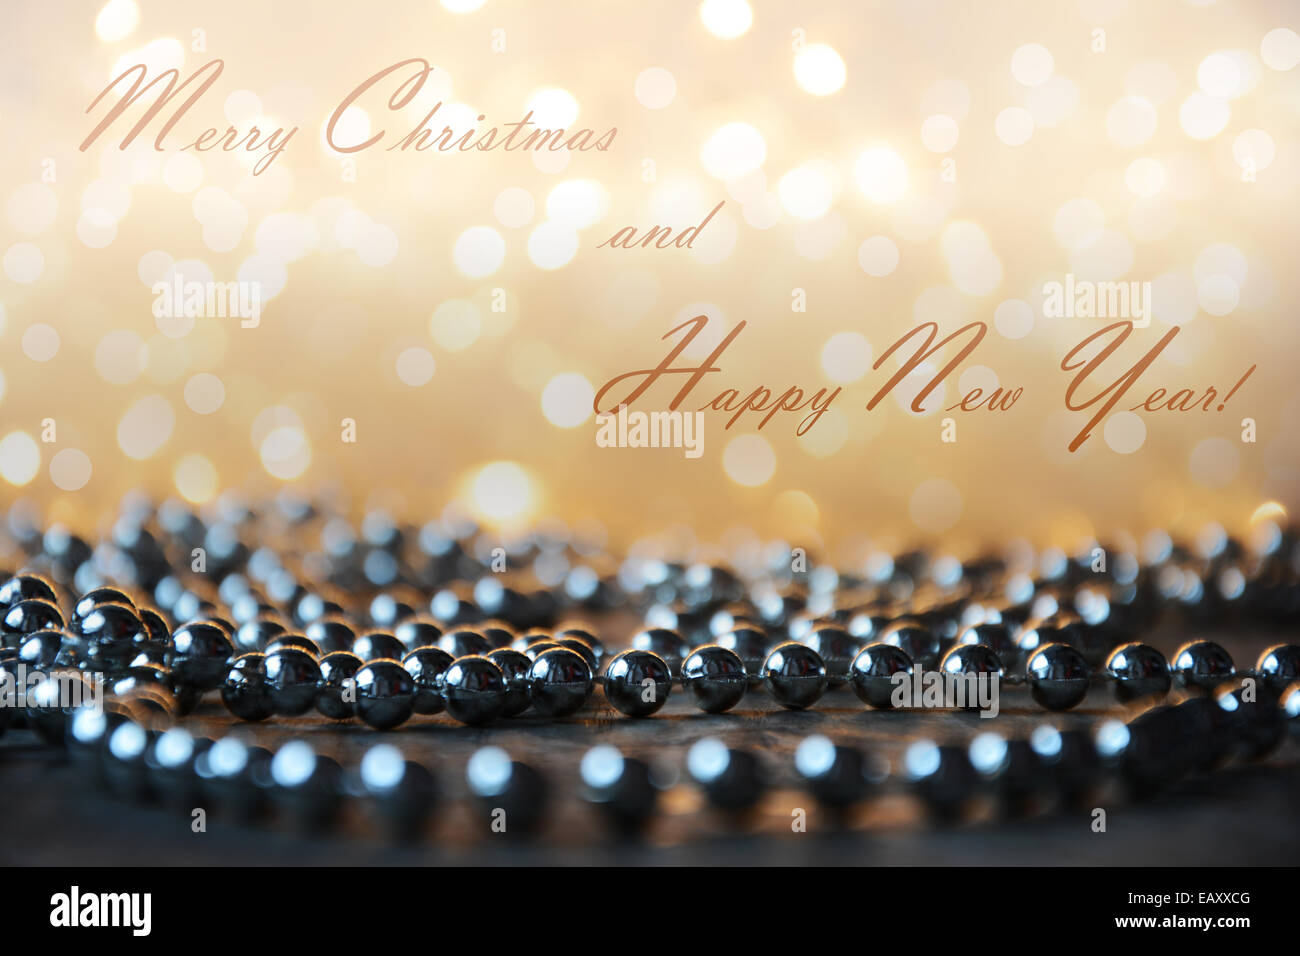 stock photo yellow christmas lights background with silver pearls on wooden floor and text effect - Pearl Christmas Lights